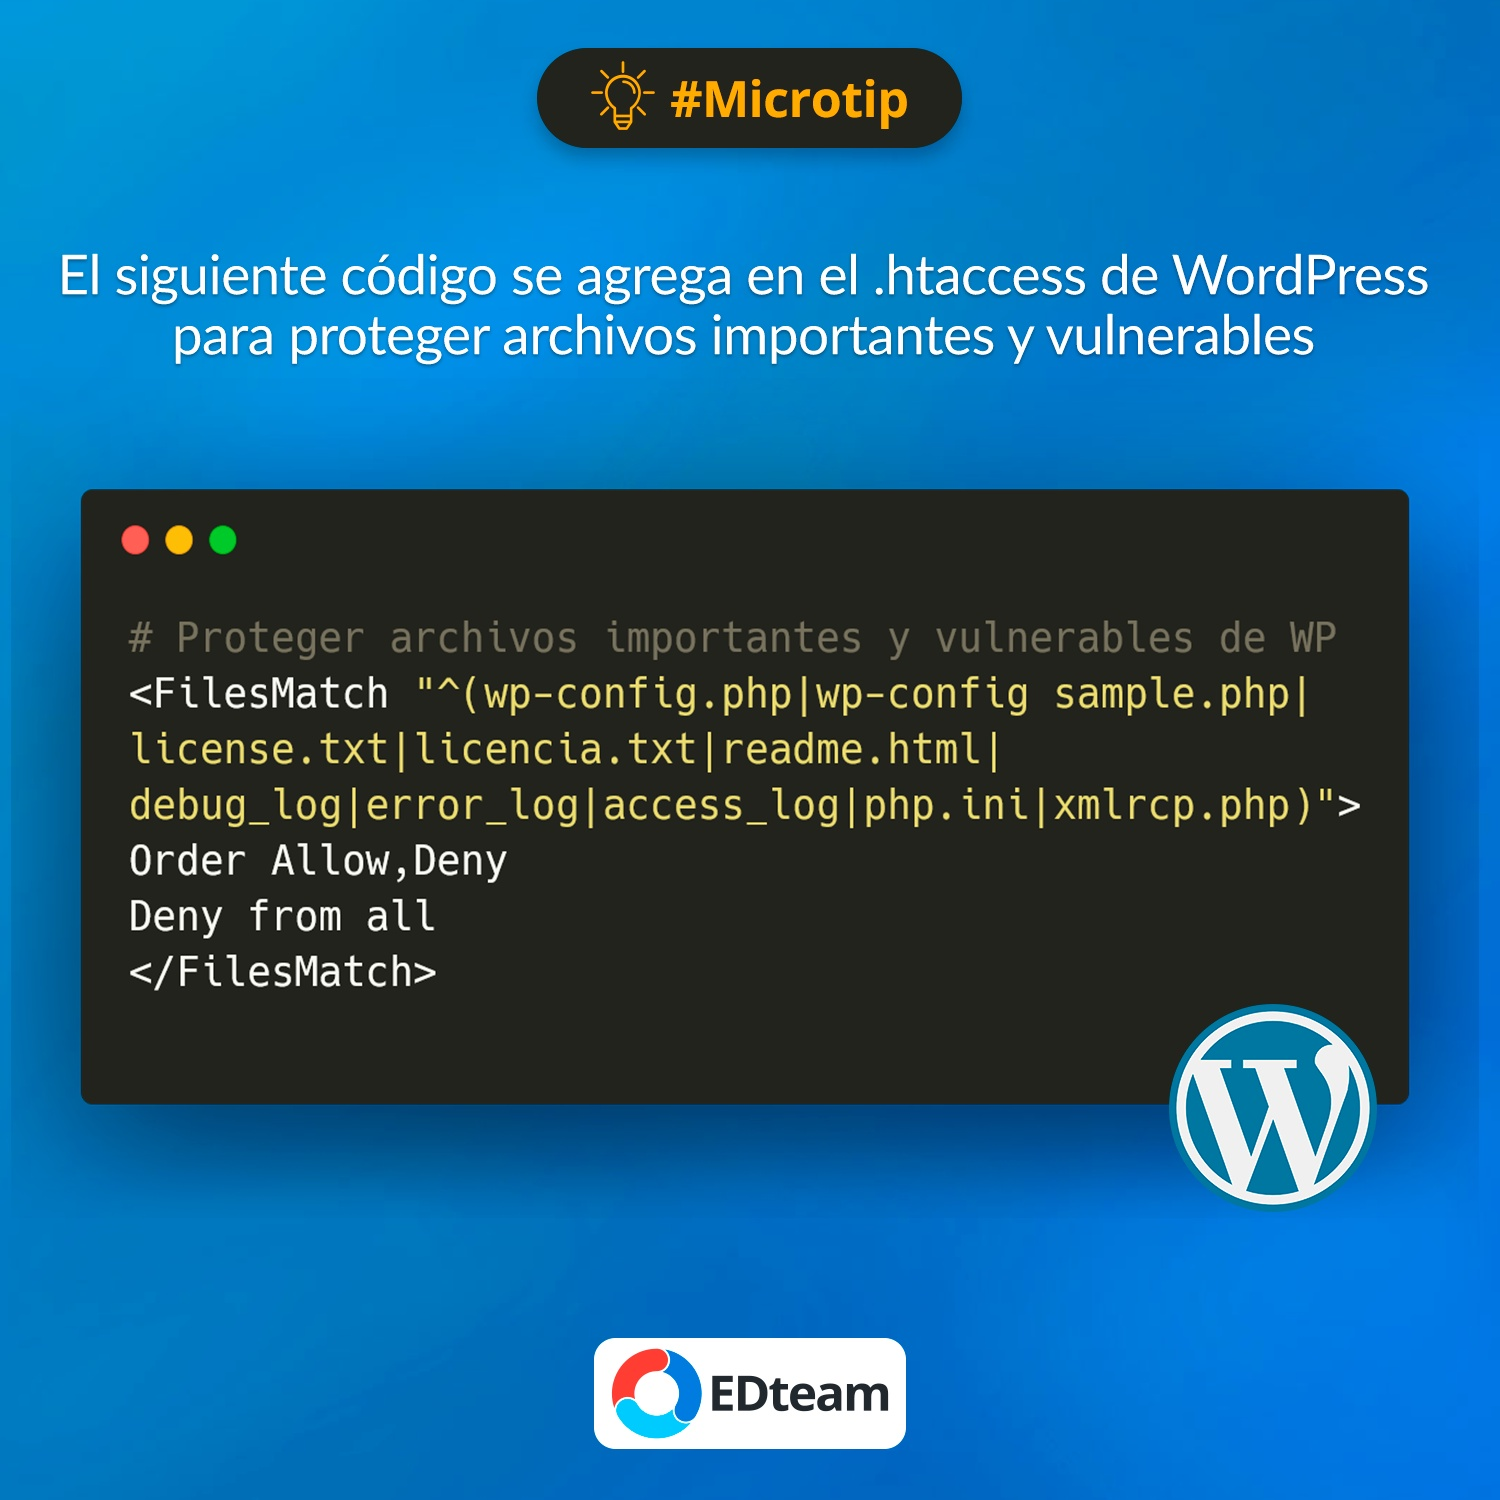 #Microtip: Proteger archivos importantes y vulnerables de WordPress